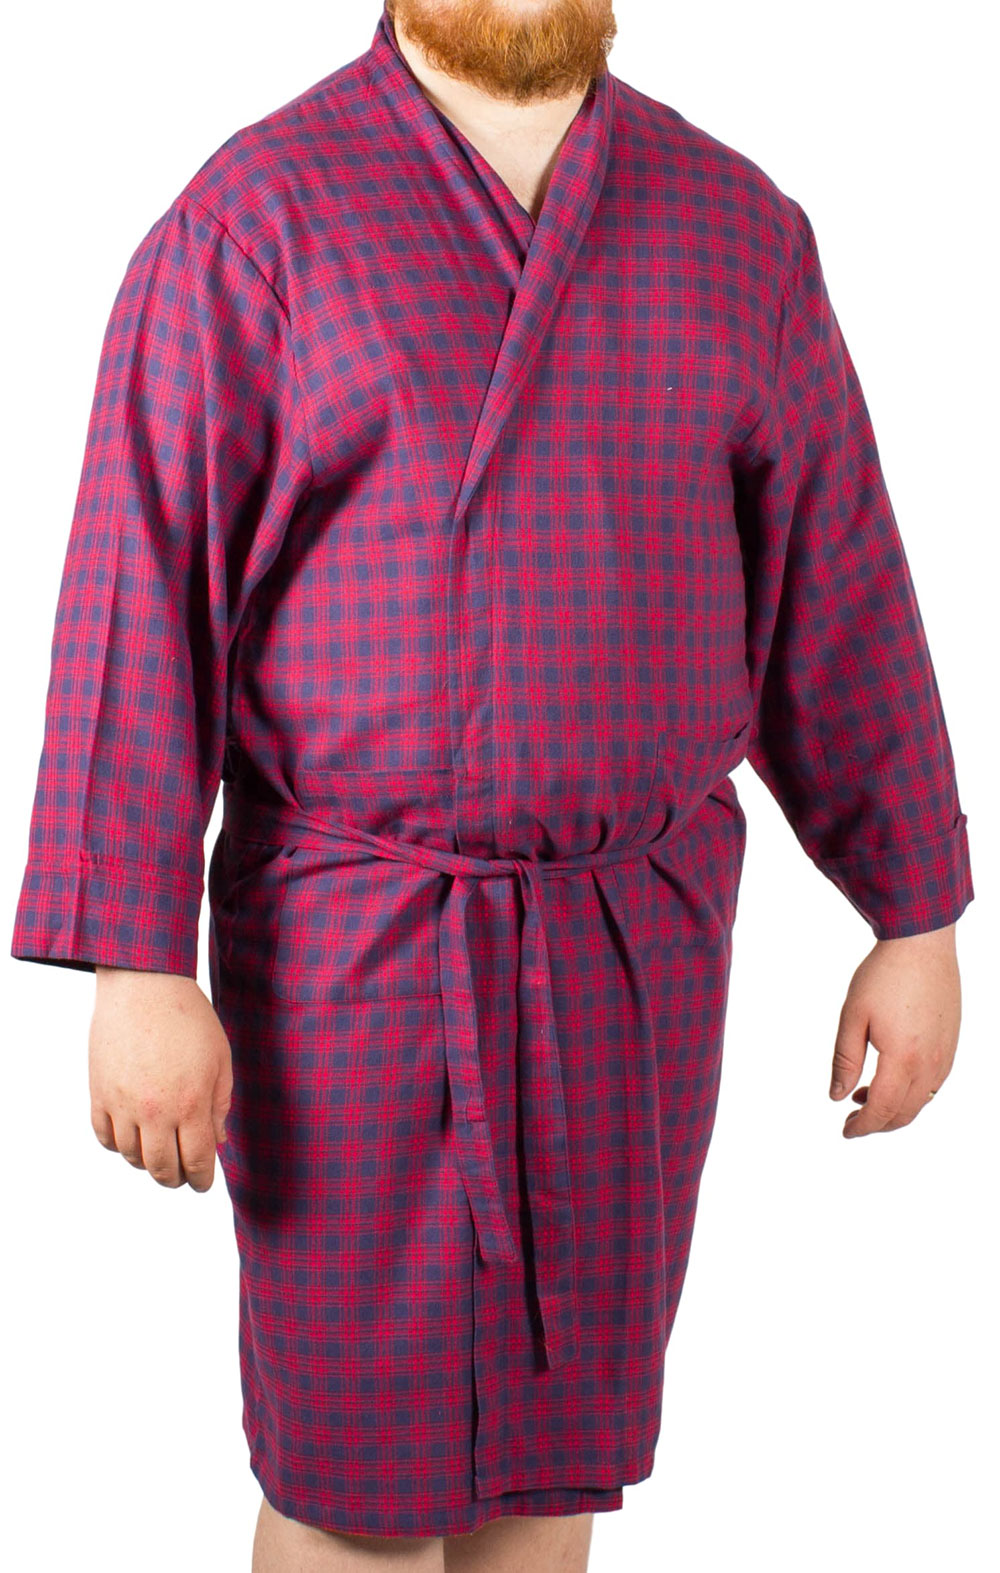 Rael Brook Dressing Gown Blue White Check Nightwear Dressing Gowns Kimonos